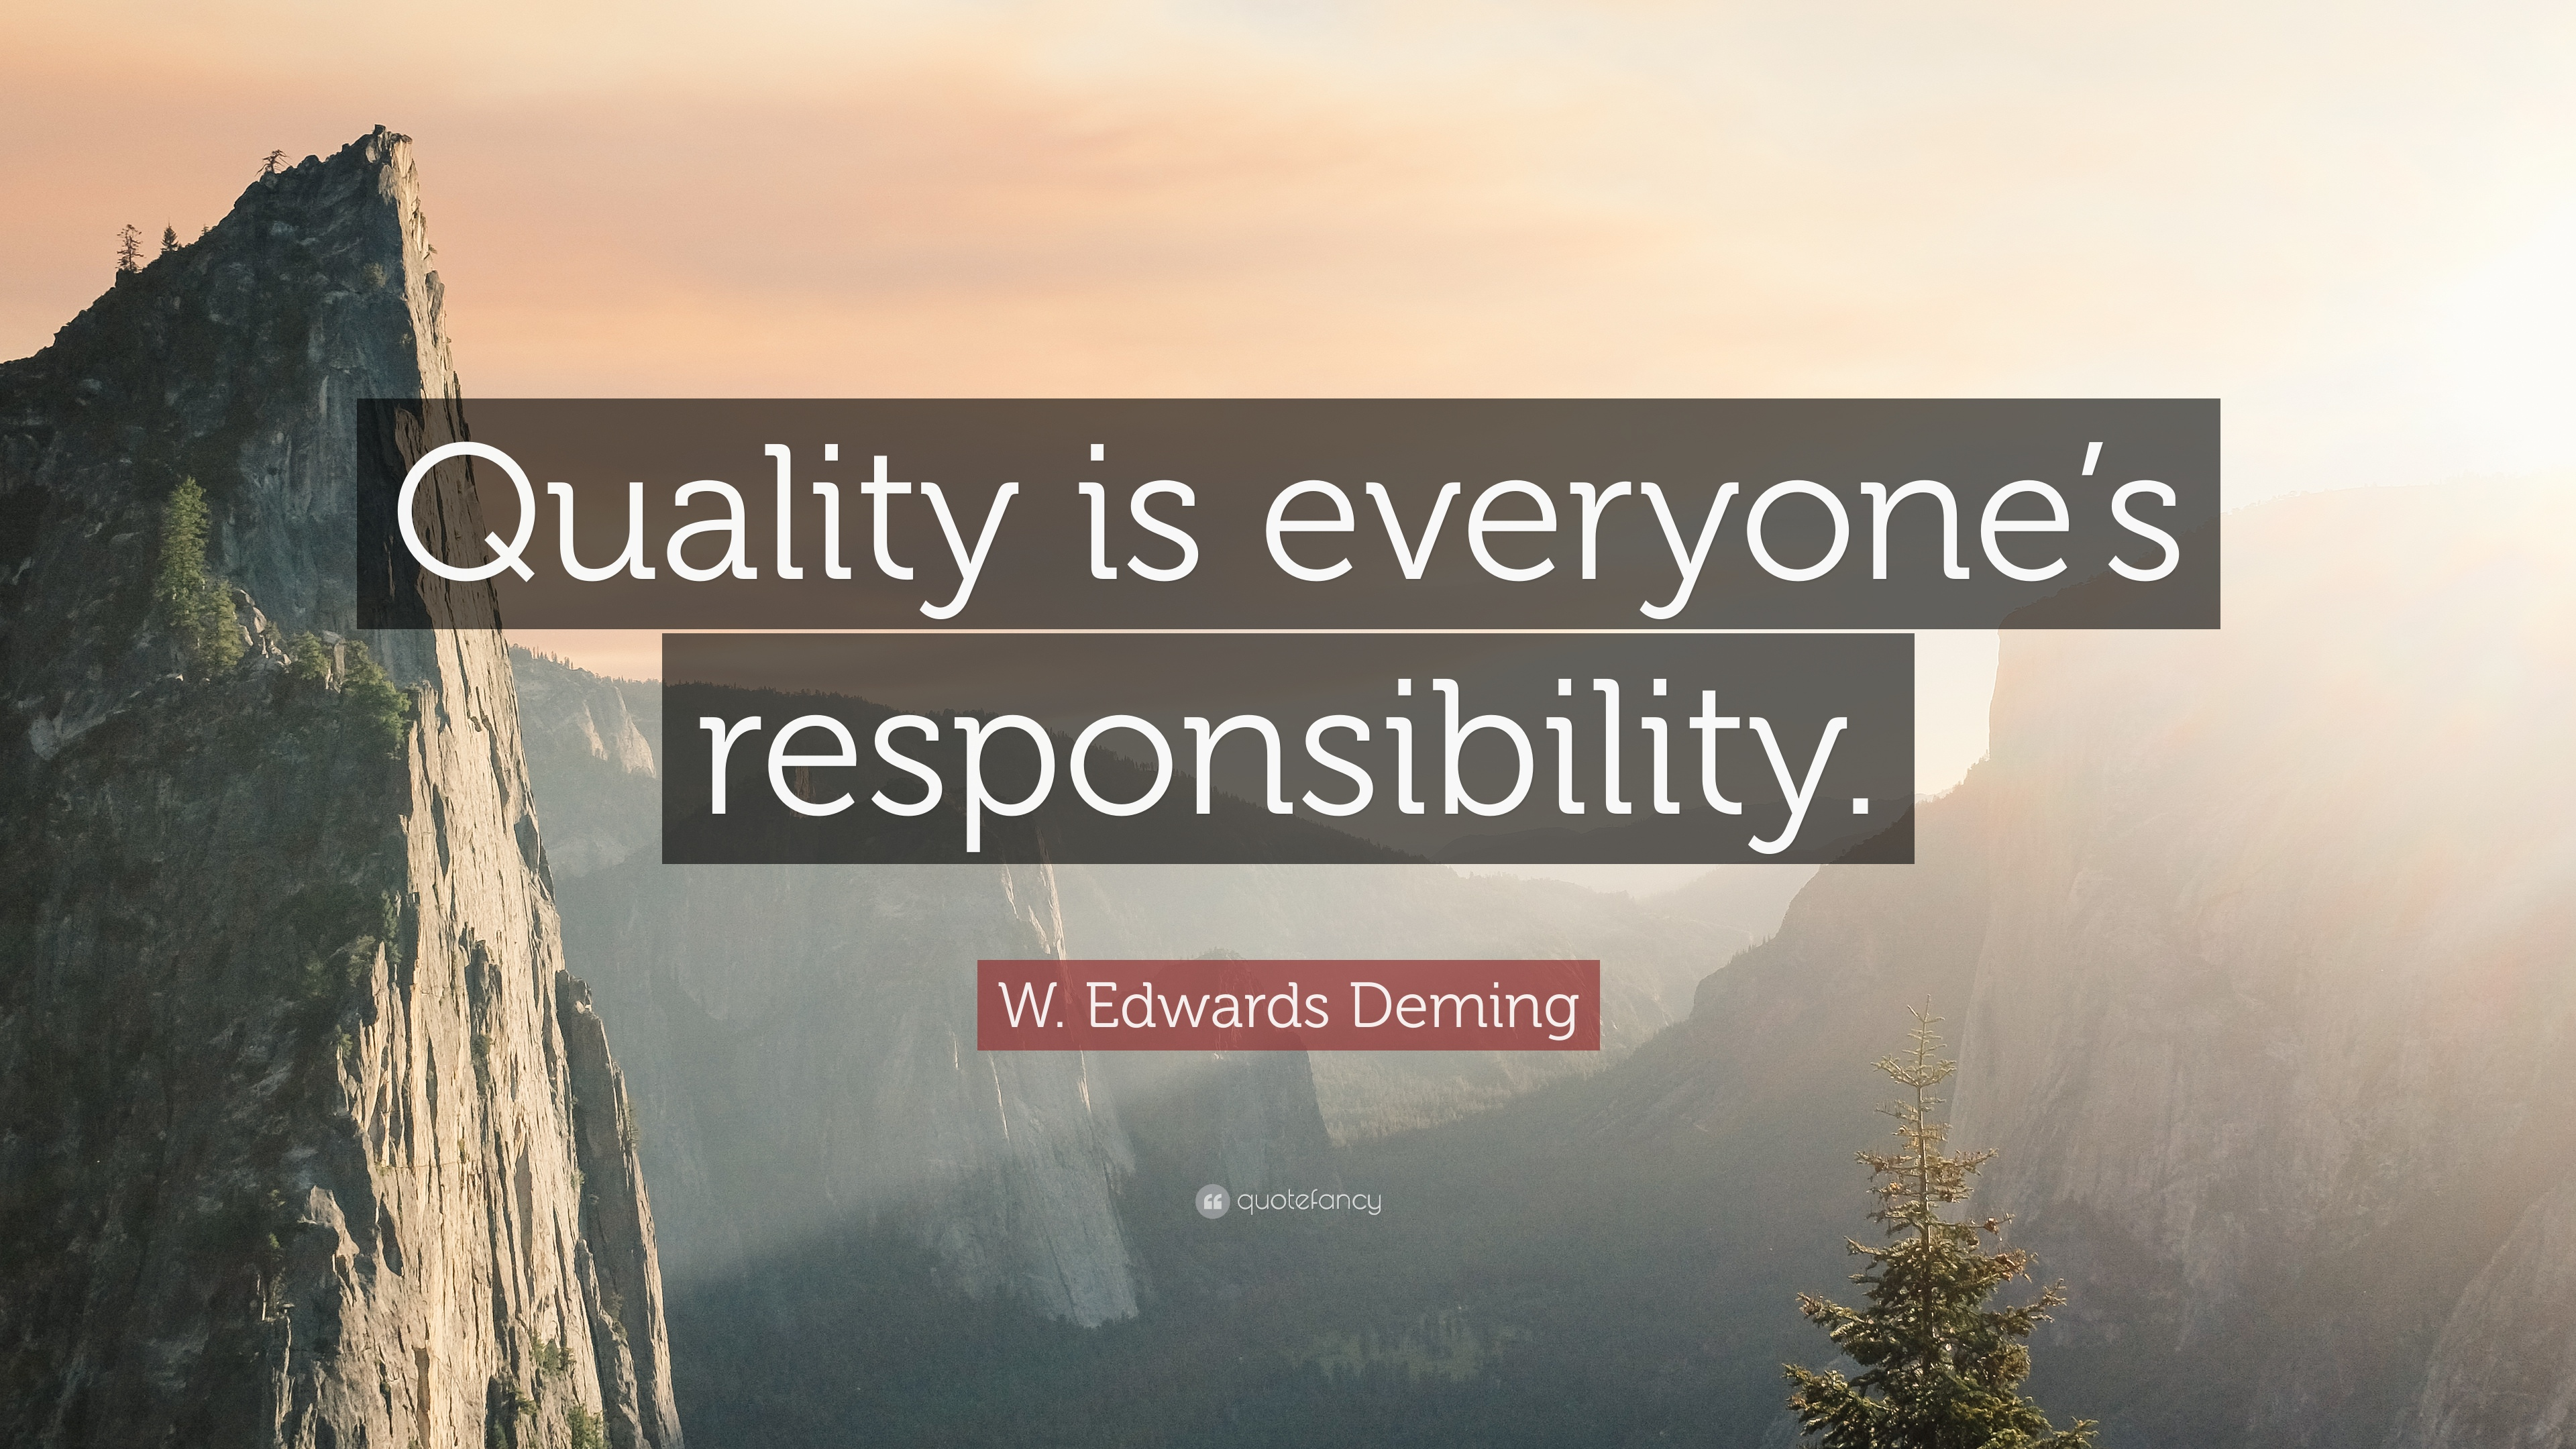 W Edwards Deming Quotes 213 Wallpapers Quotefancy